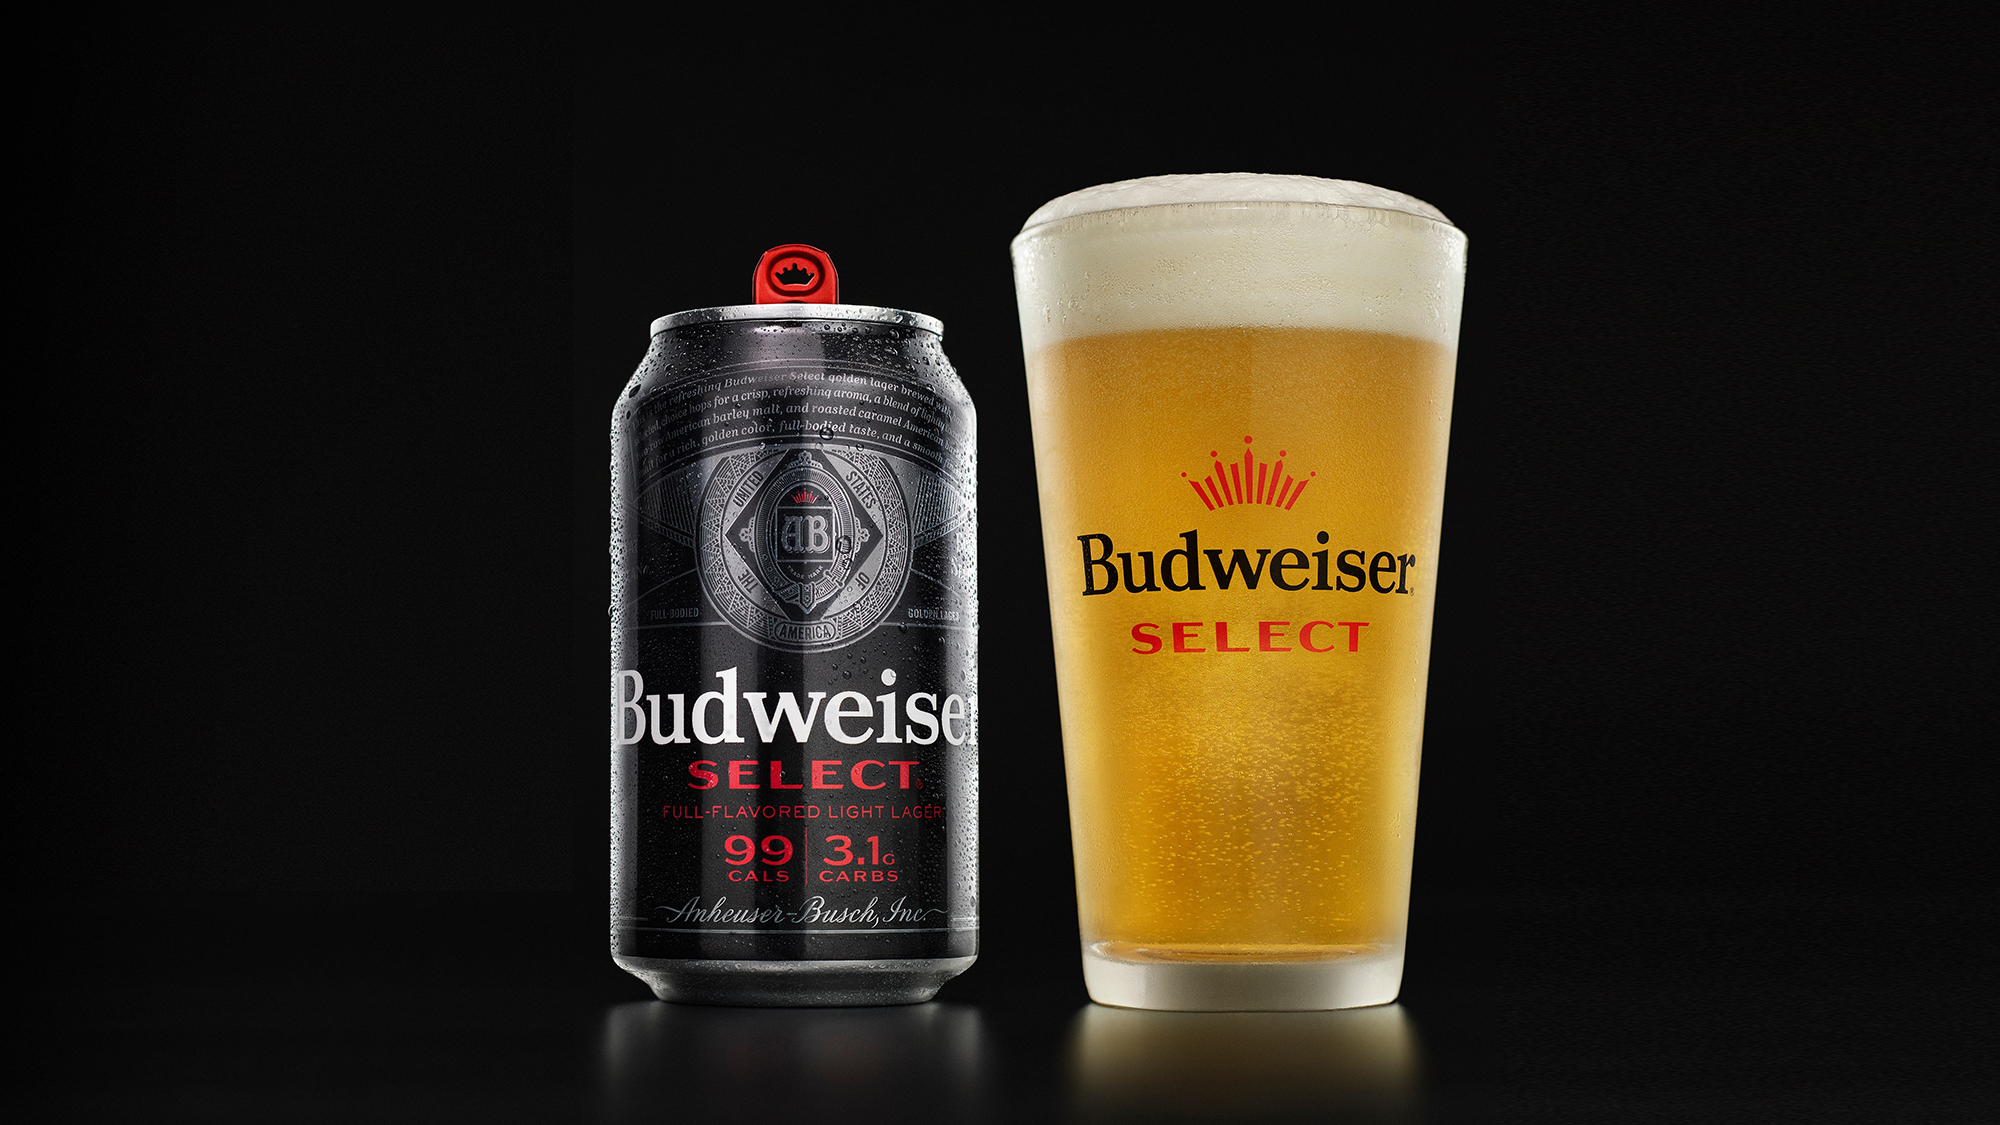 Budweiser Select is making a comeback as light beer sales surge